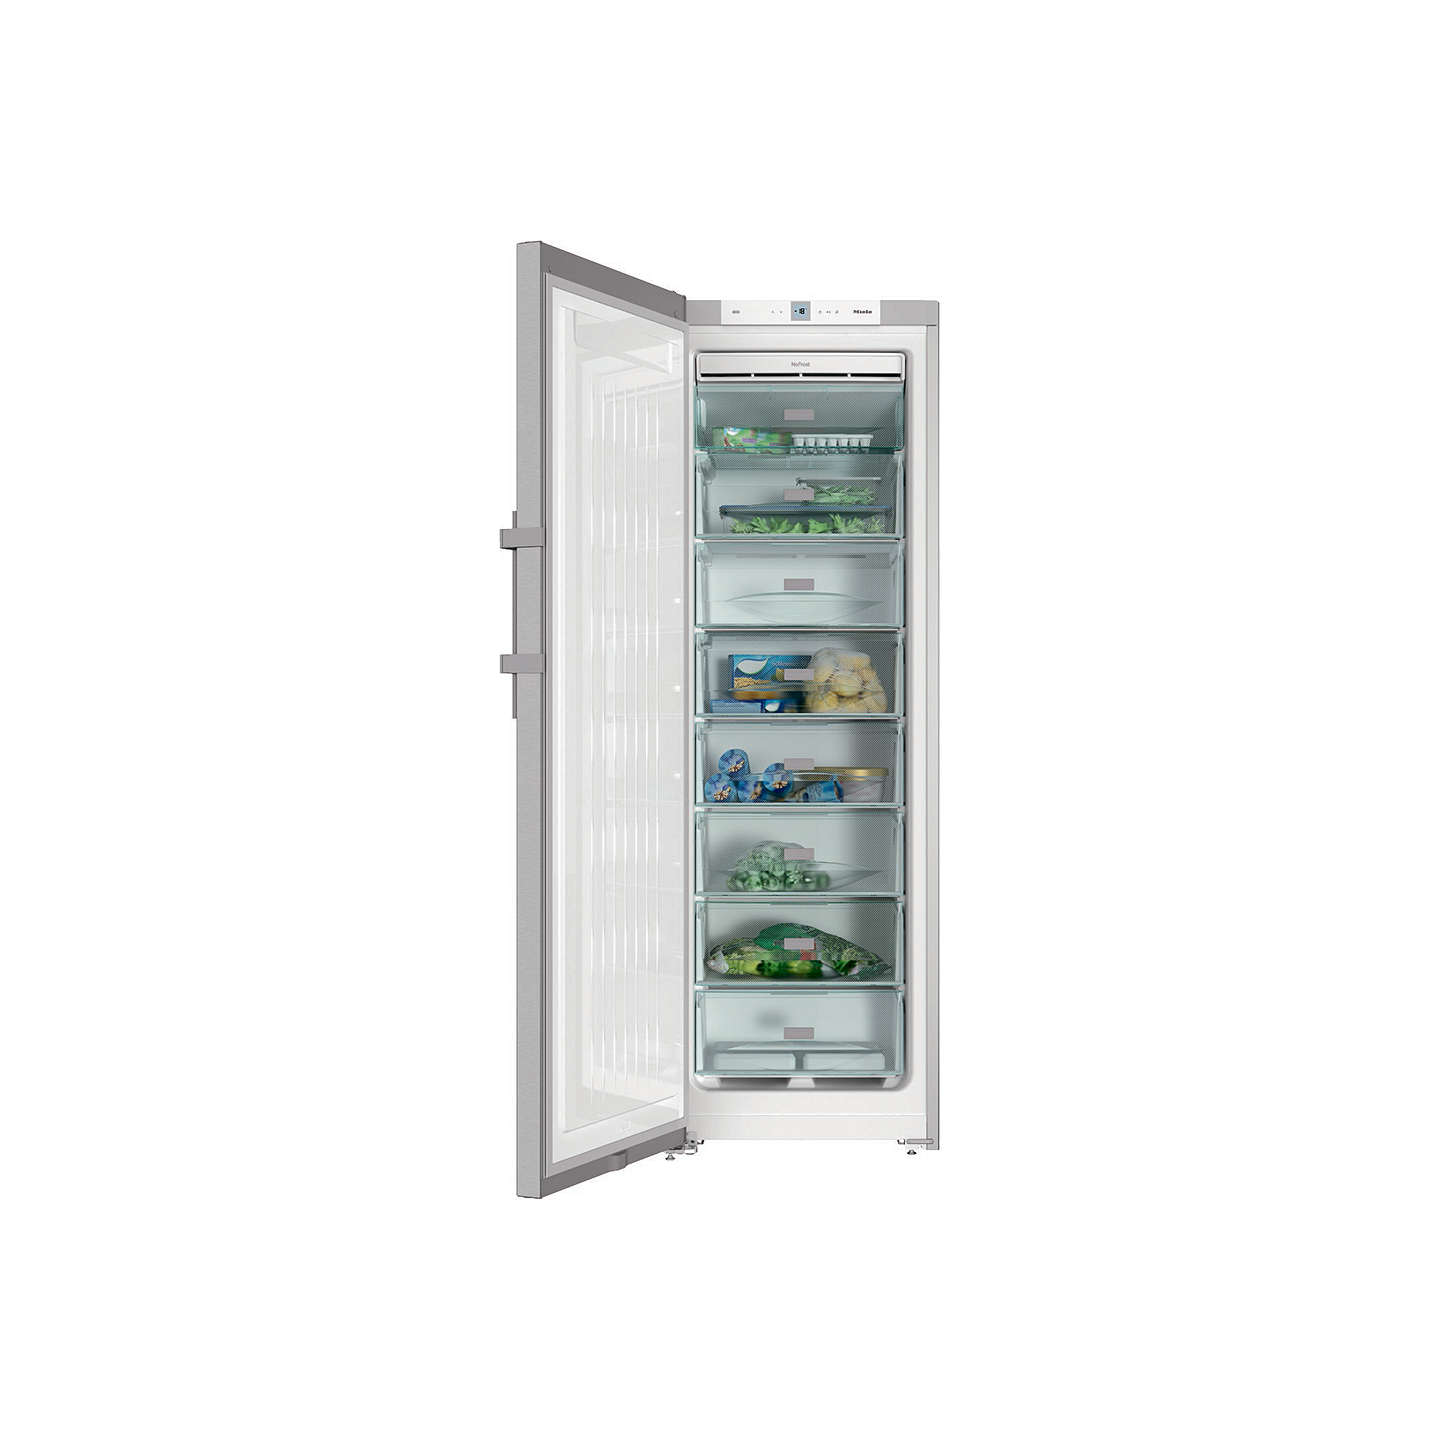 BuyMiele FN28262 Freestanding Freezer, A++ Energy Rating, 60cm Wide, Silver Online at johnlewis.com